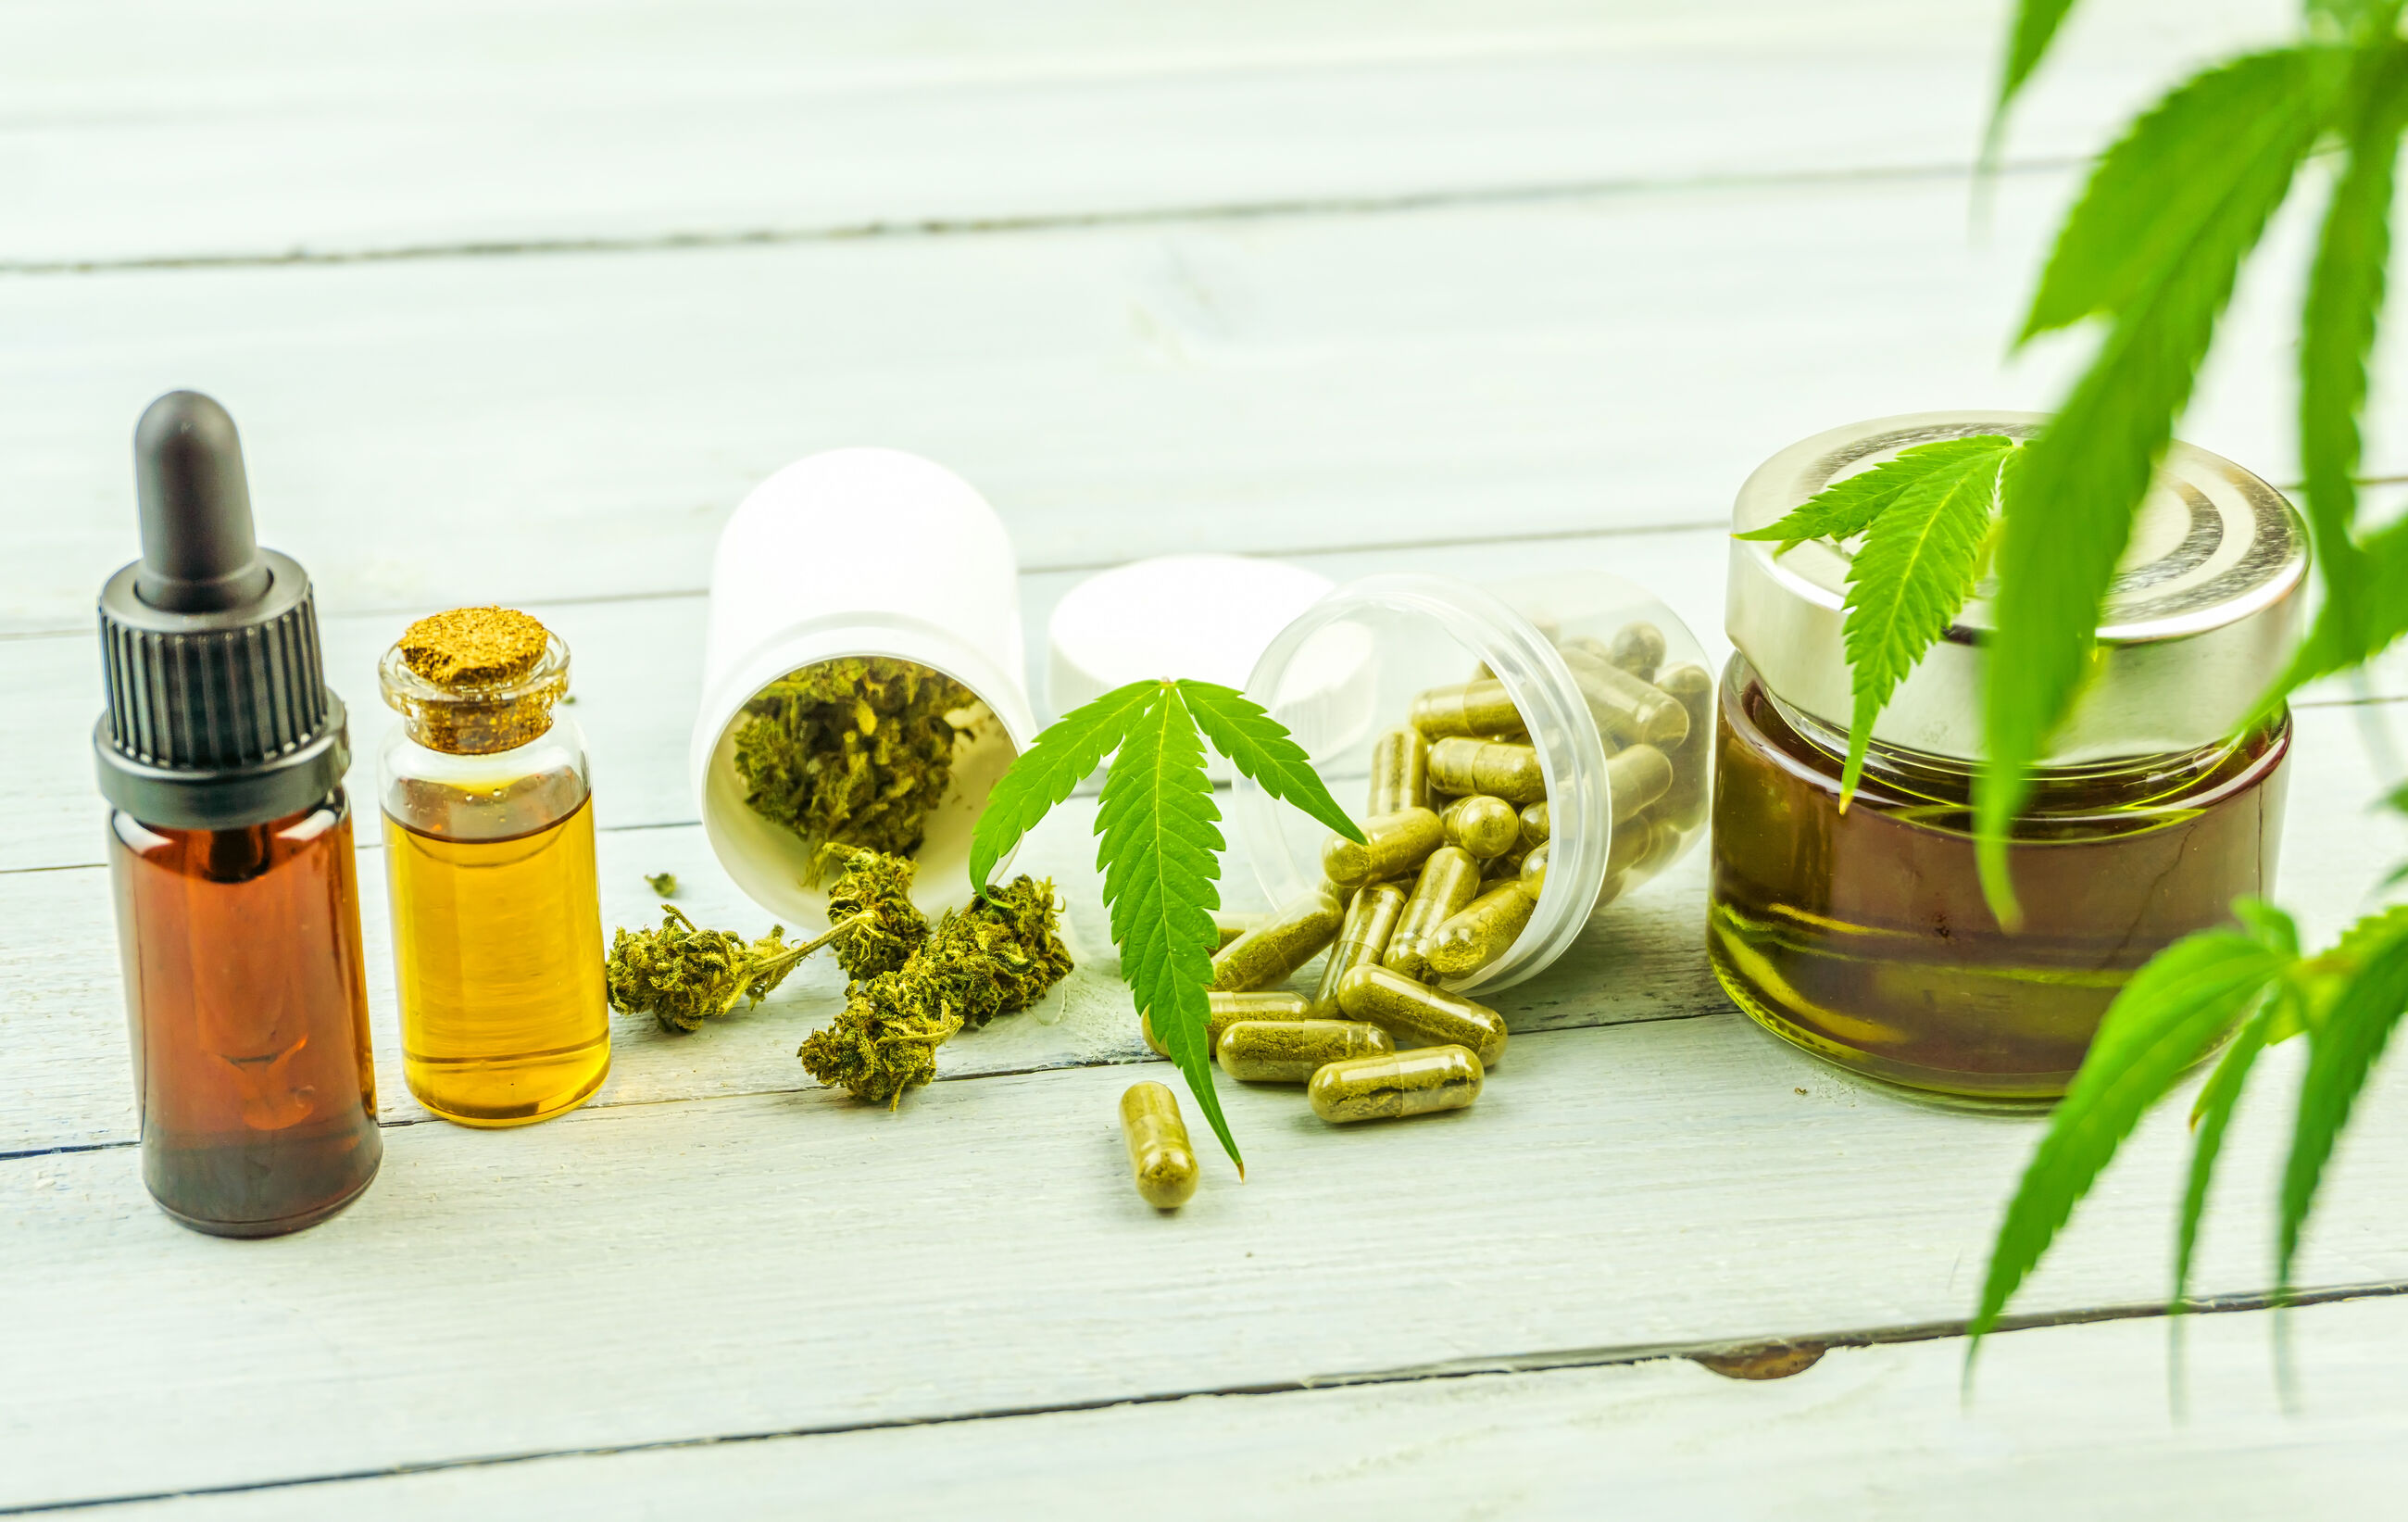 Where Can I Buy Wholesale CBD Online?